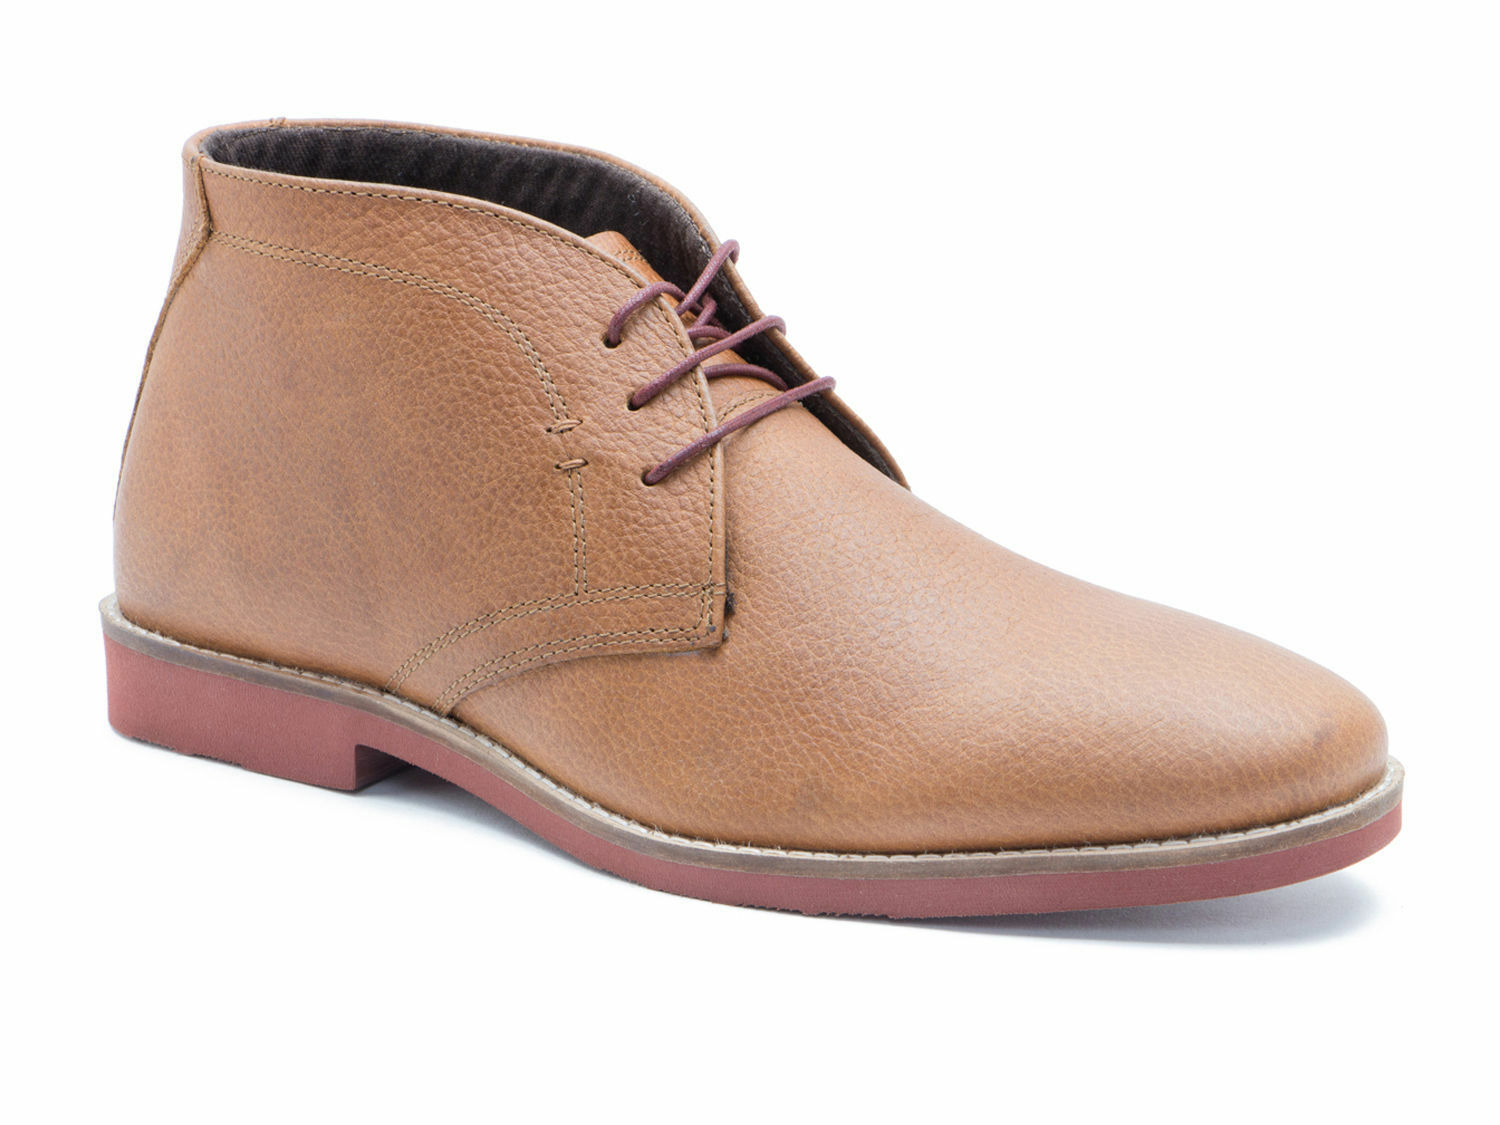 new MEN'S Red Tape Dorney Milled Honey Boots Leather Mens Brogue Desert Boots Honey size 7 508429